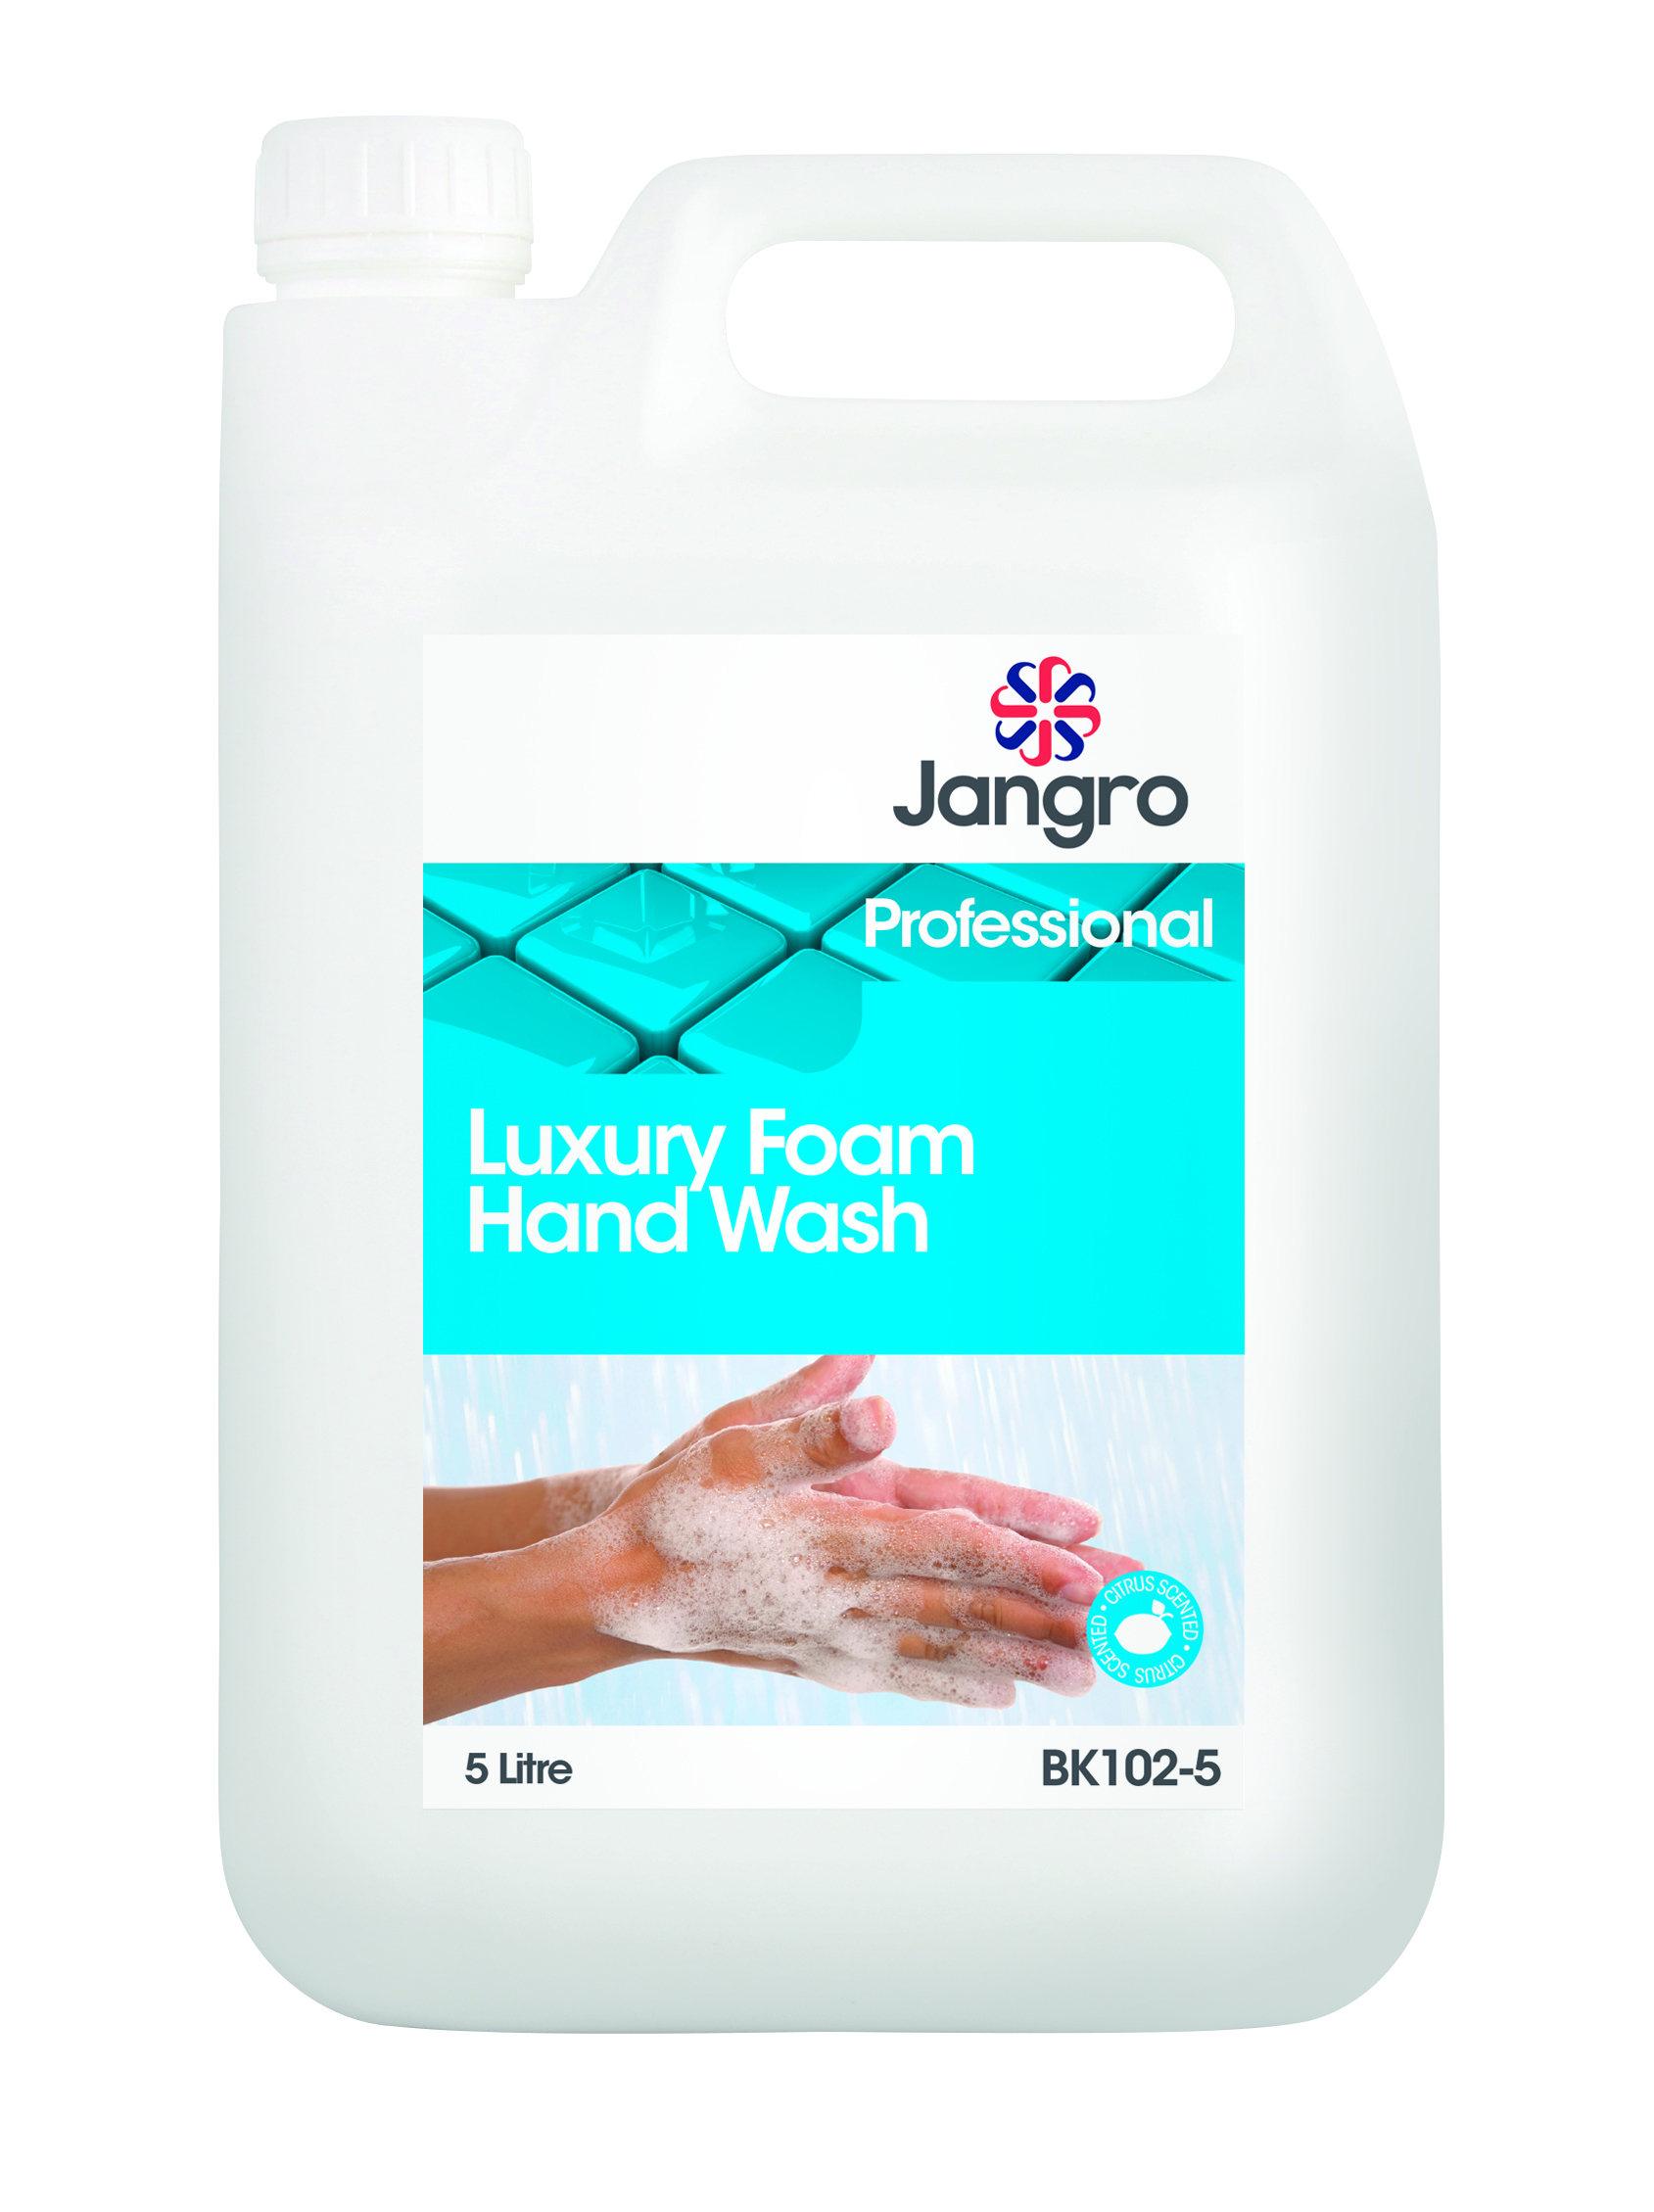 Jangro Luxury Foam Hand Wash 5 Litre